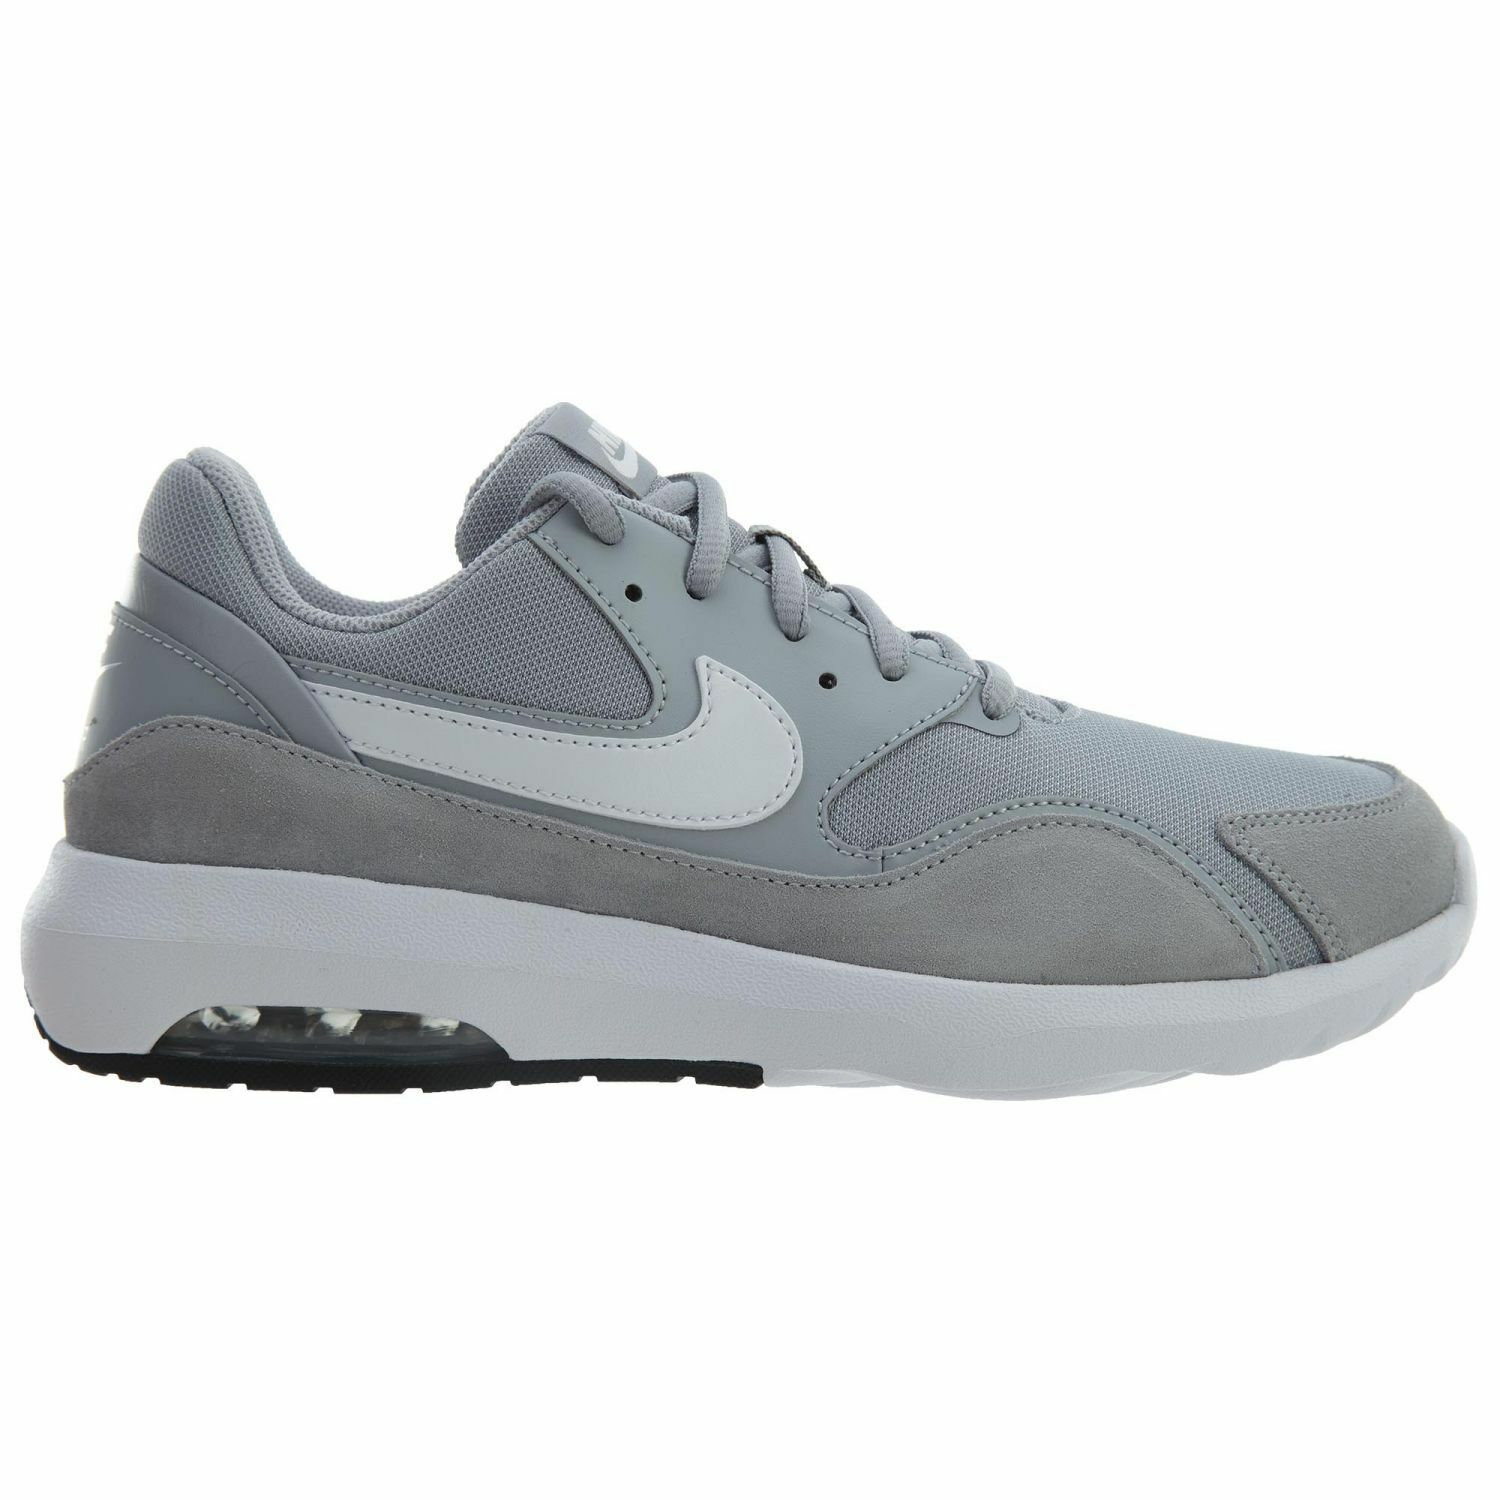 Nike Air Max Nostalgic Mens 916781-001 Wolf Grey White Running Shoes Size 9